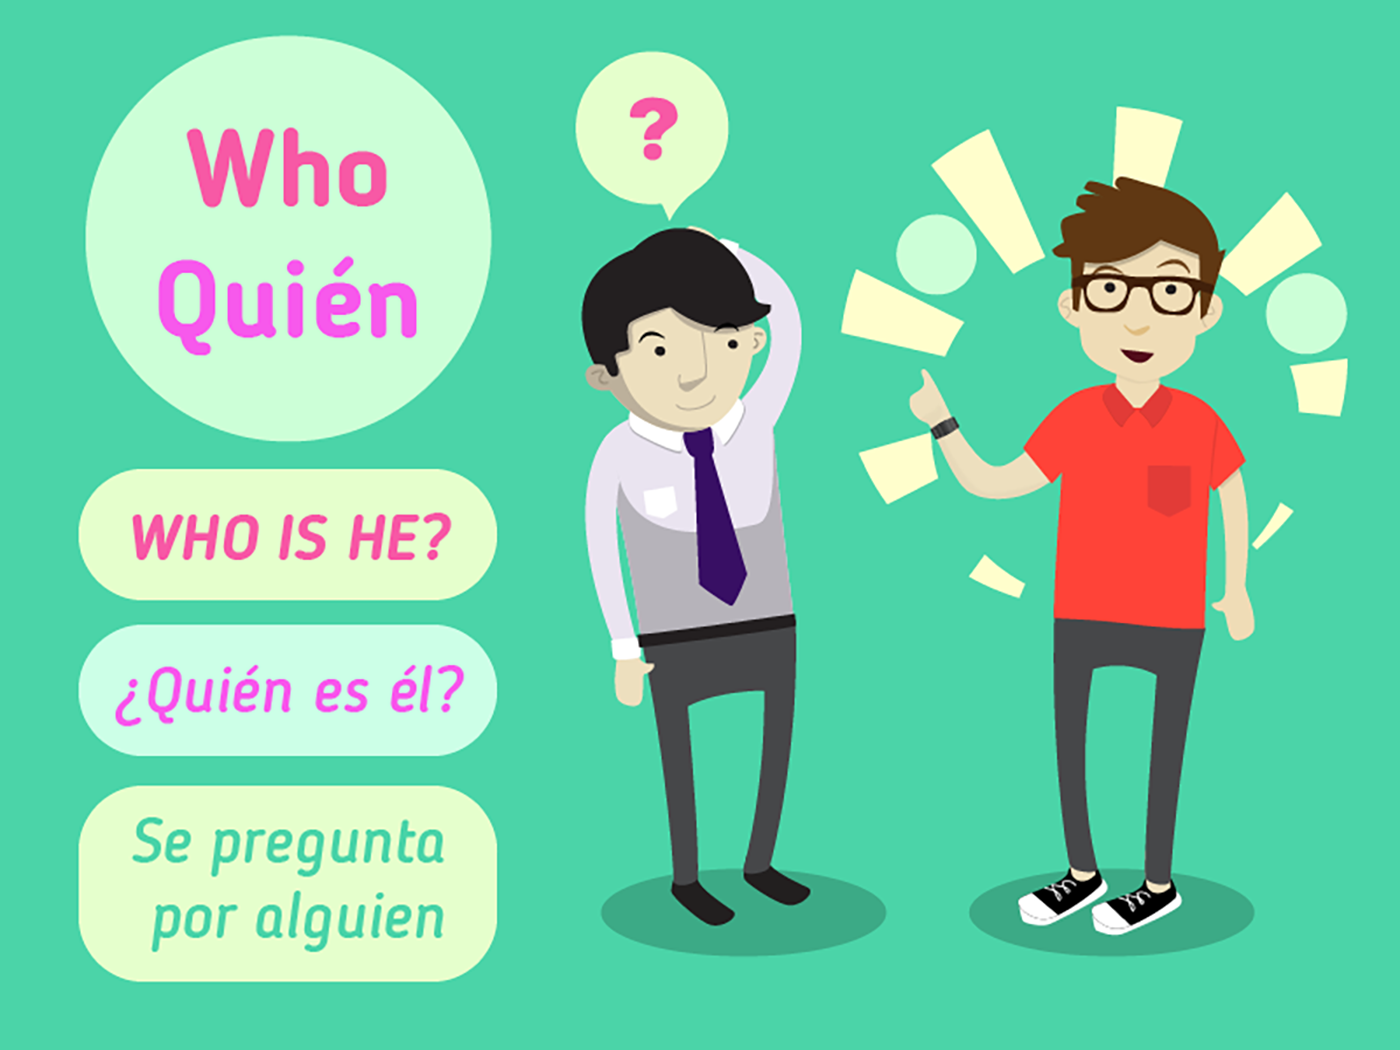 Ejemplo de Wh question